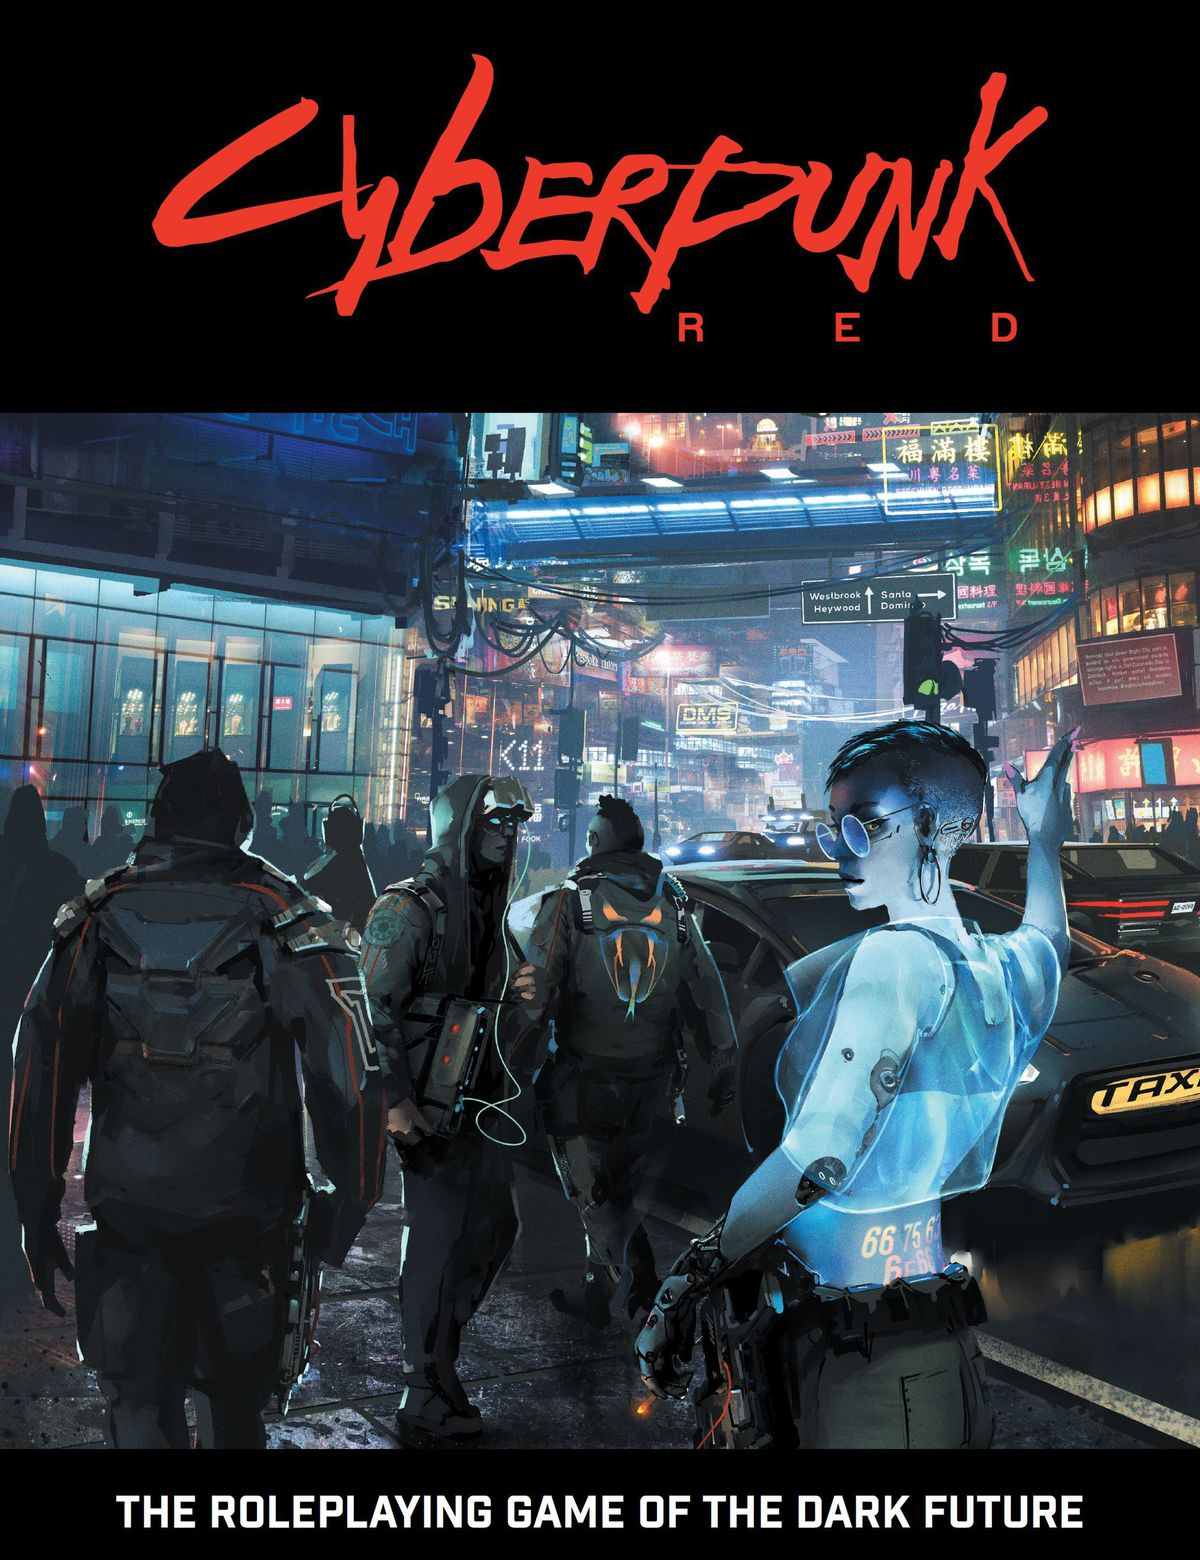 Cover art for Cyberpunk Red shows a woman haling a taxi in a futuristic city scene.